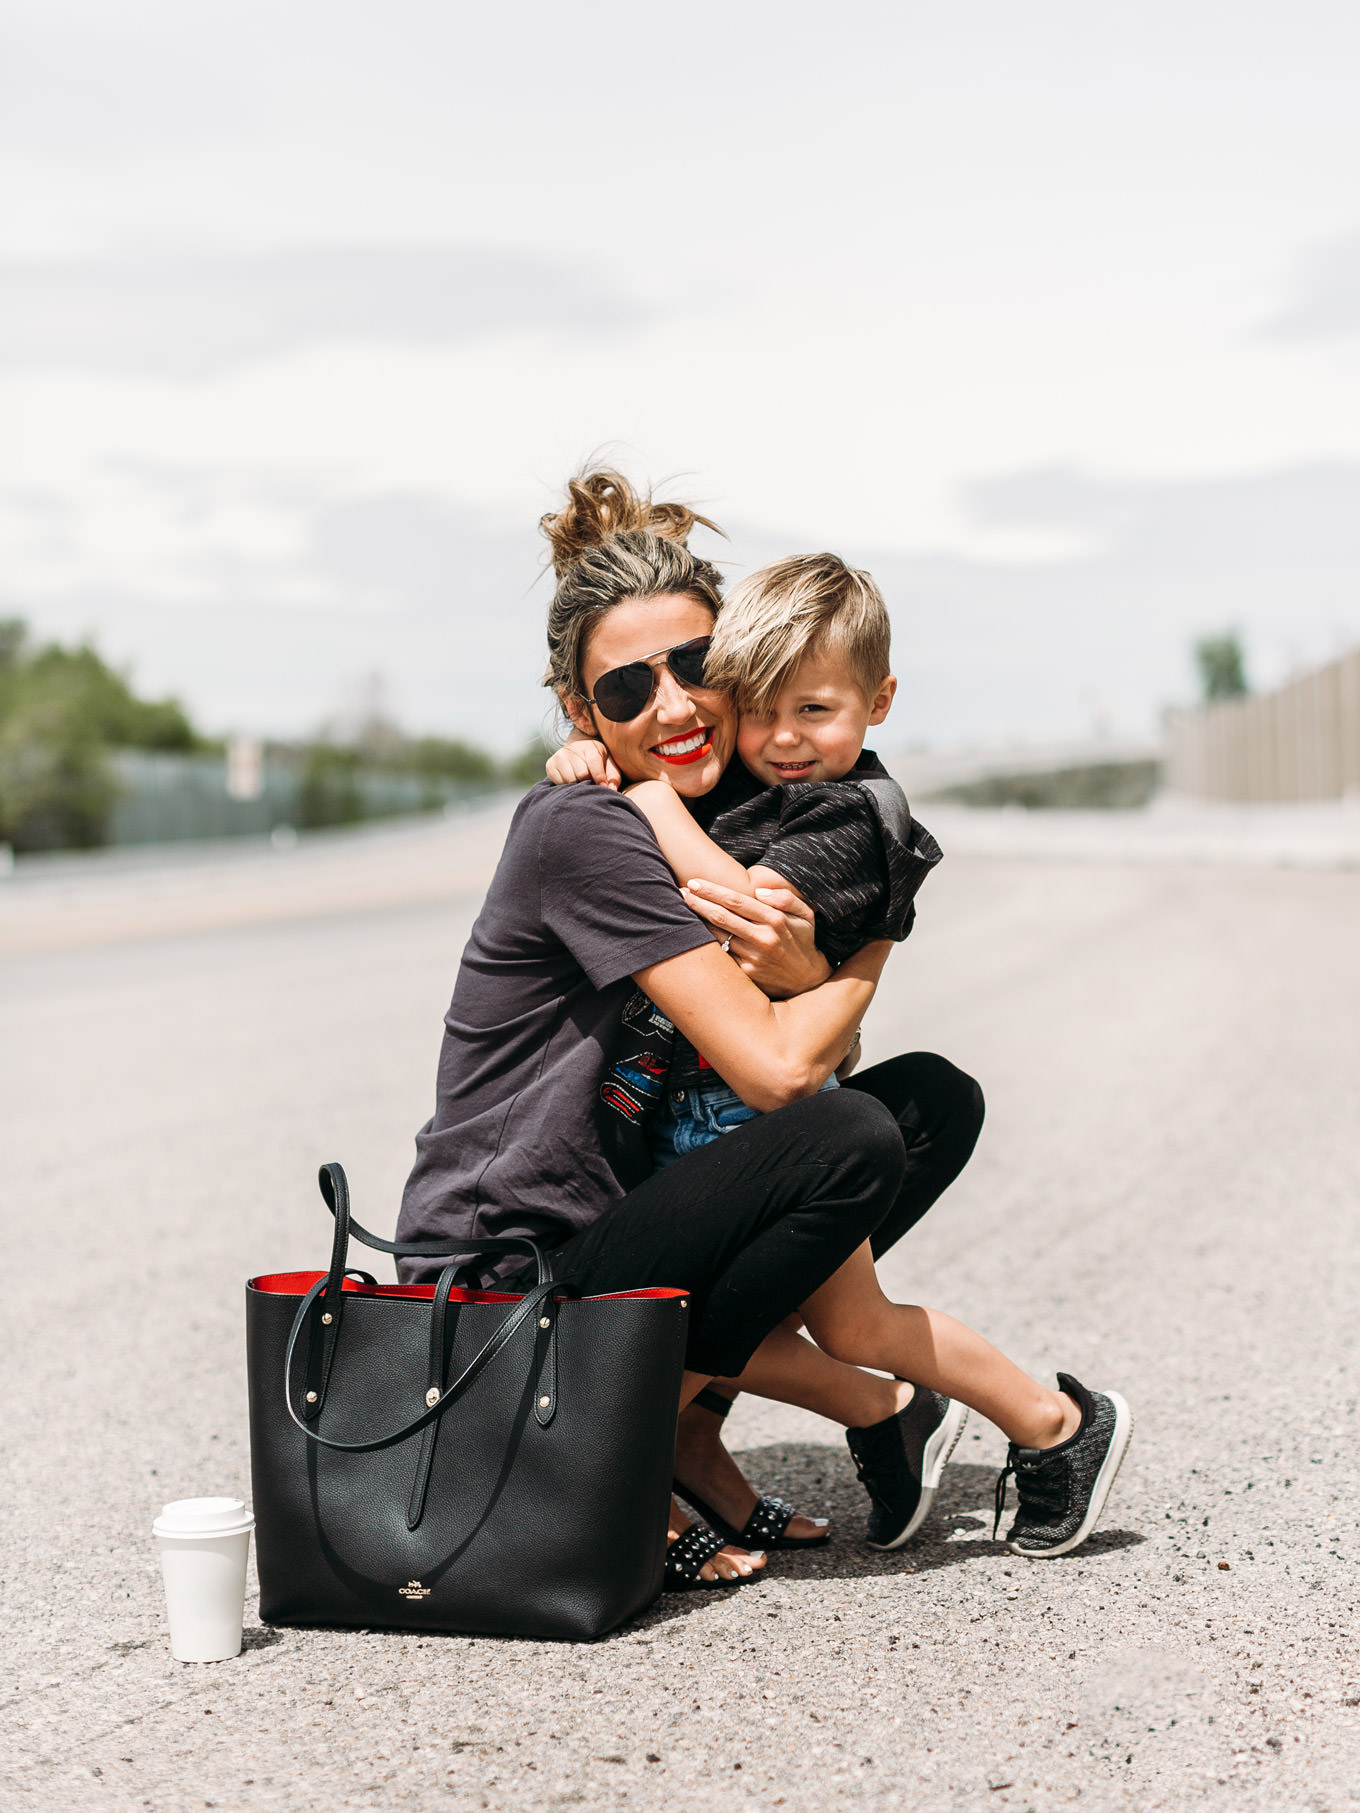 6 steps to get closer to being super mom